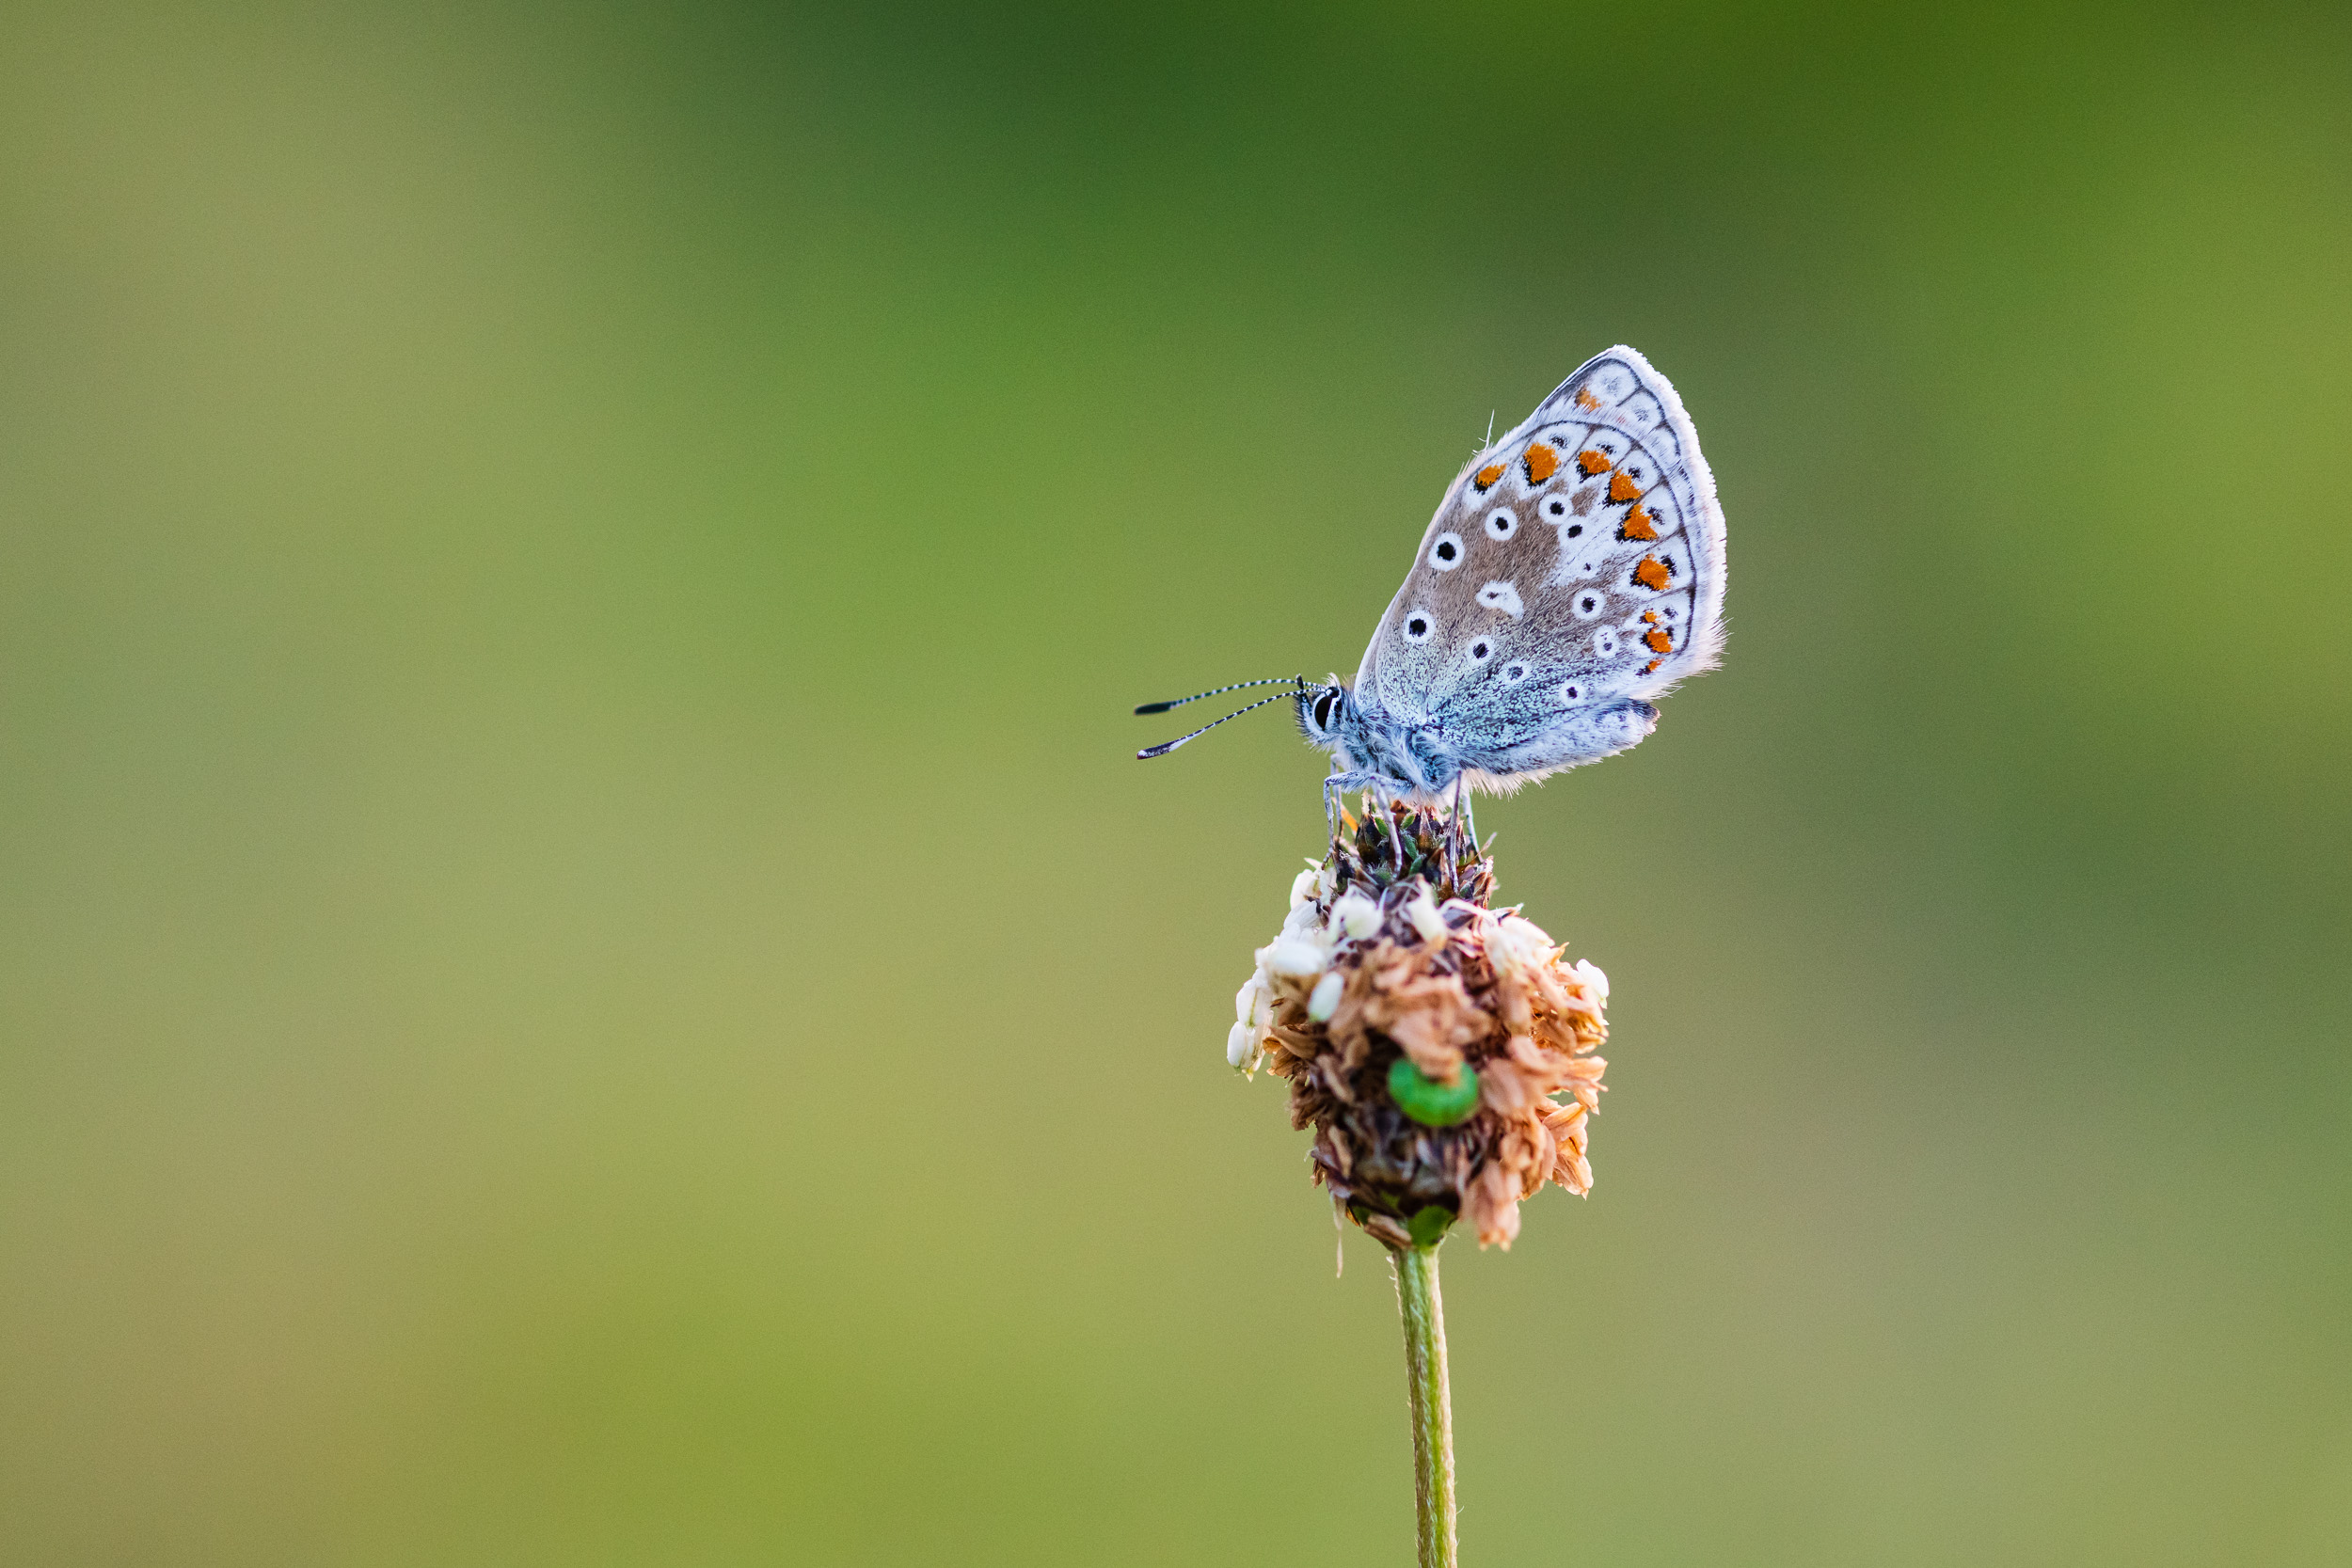 Common Blue #1, Devon  - Nikon D850, Zeiss 100mm f/2 at f/3.5, 1/400th second at ISO 1600